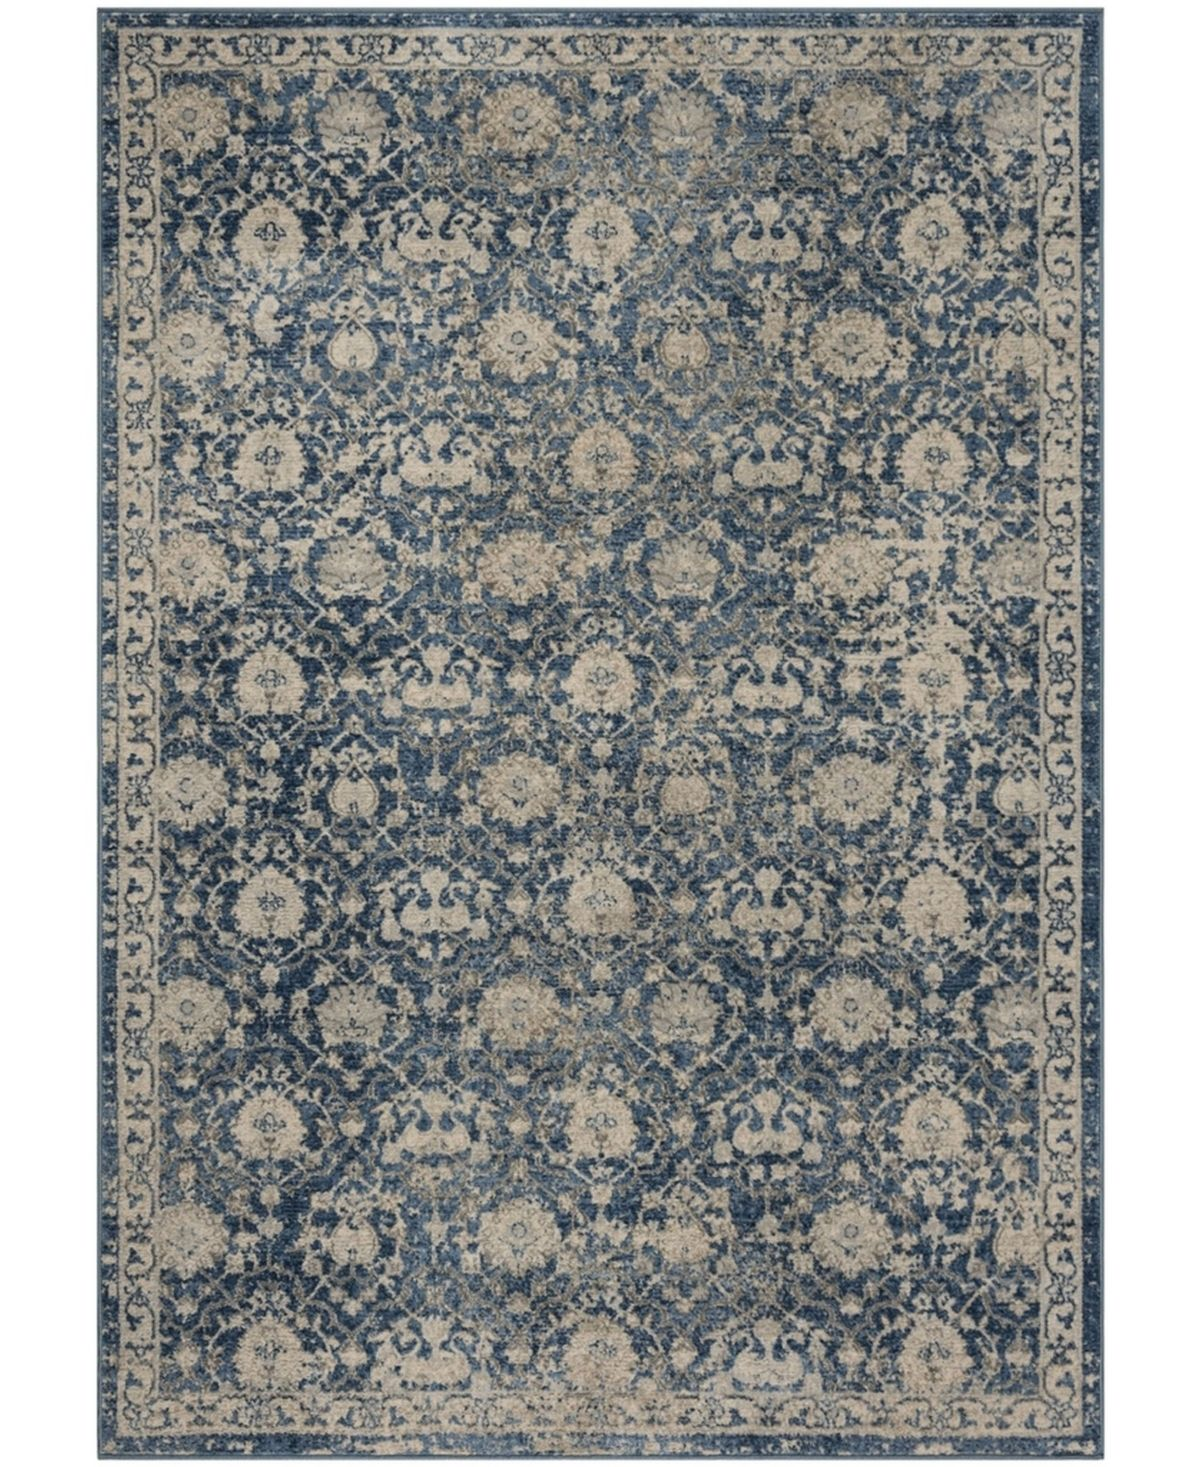 Safavieh Brentwood Navy And Creme 8 X 10 Area Rug Reviews